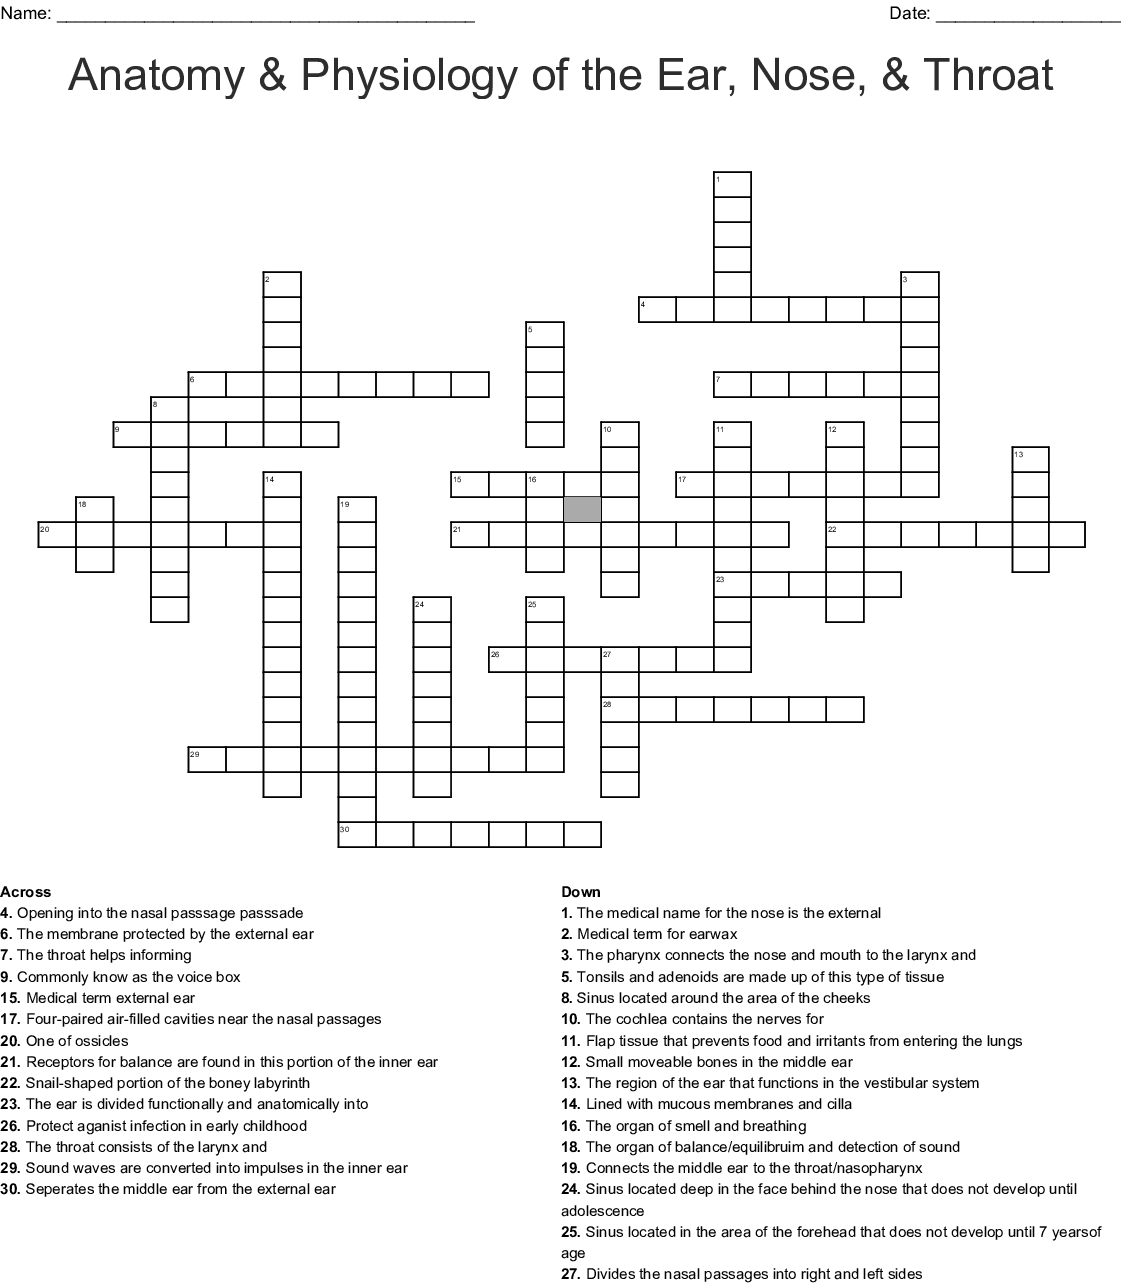 Anatomy Physiology Of The Ear Nose Throat Crossword Wordmint